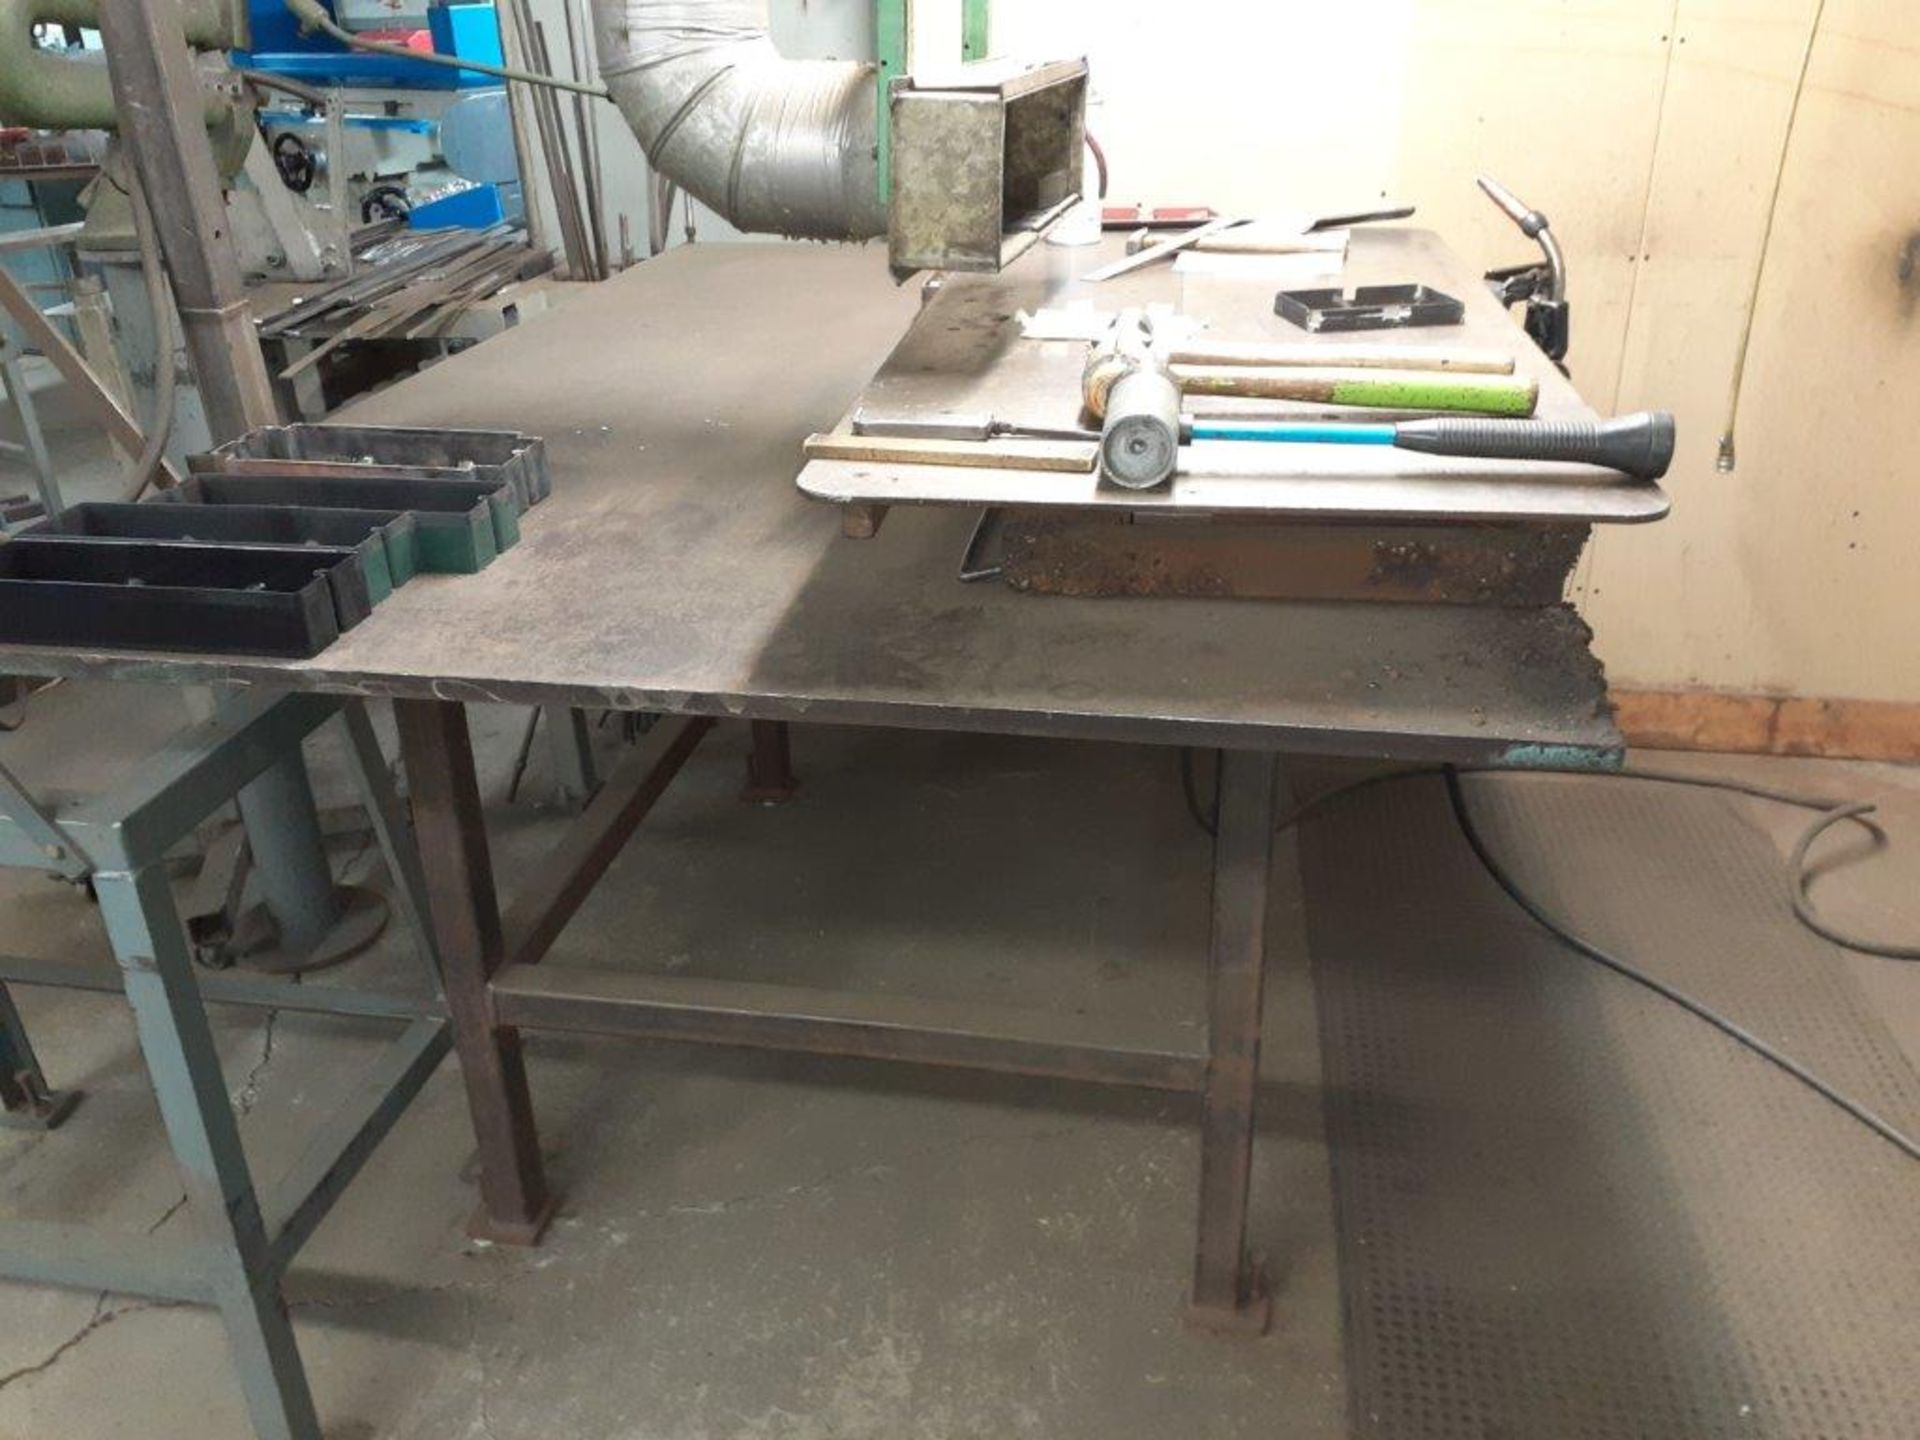 """Magnetic Welding Chuck, 22"""" x 12"""" c/w Extension: 44"""" x 22"""" & Exhaust Hood c/w Tools & Accessories - Image 2 of 5"""